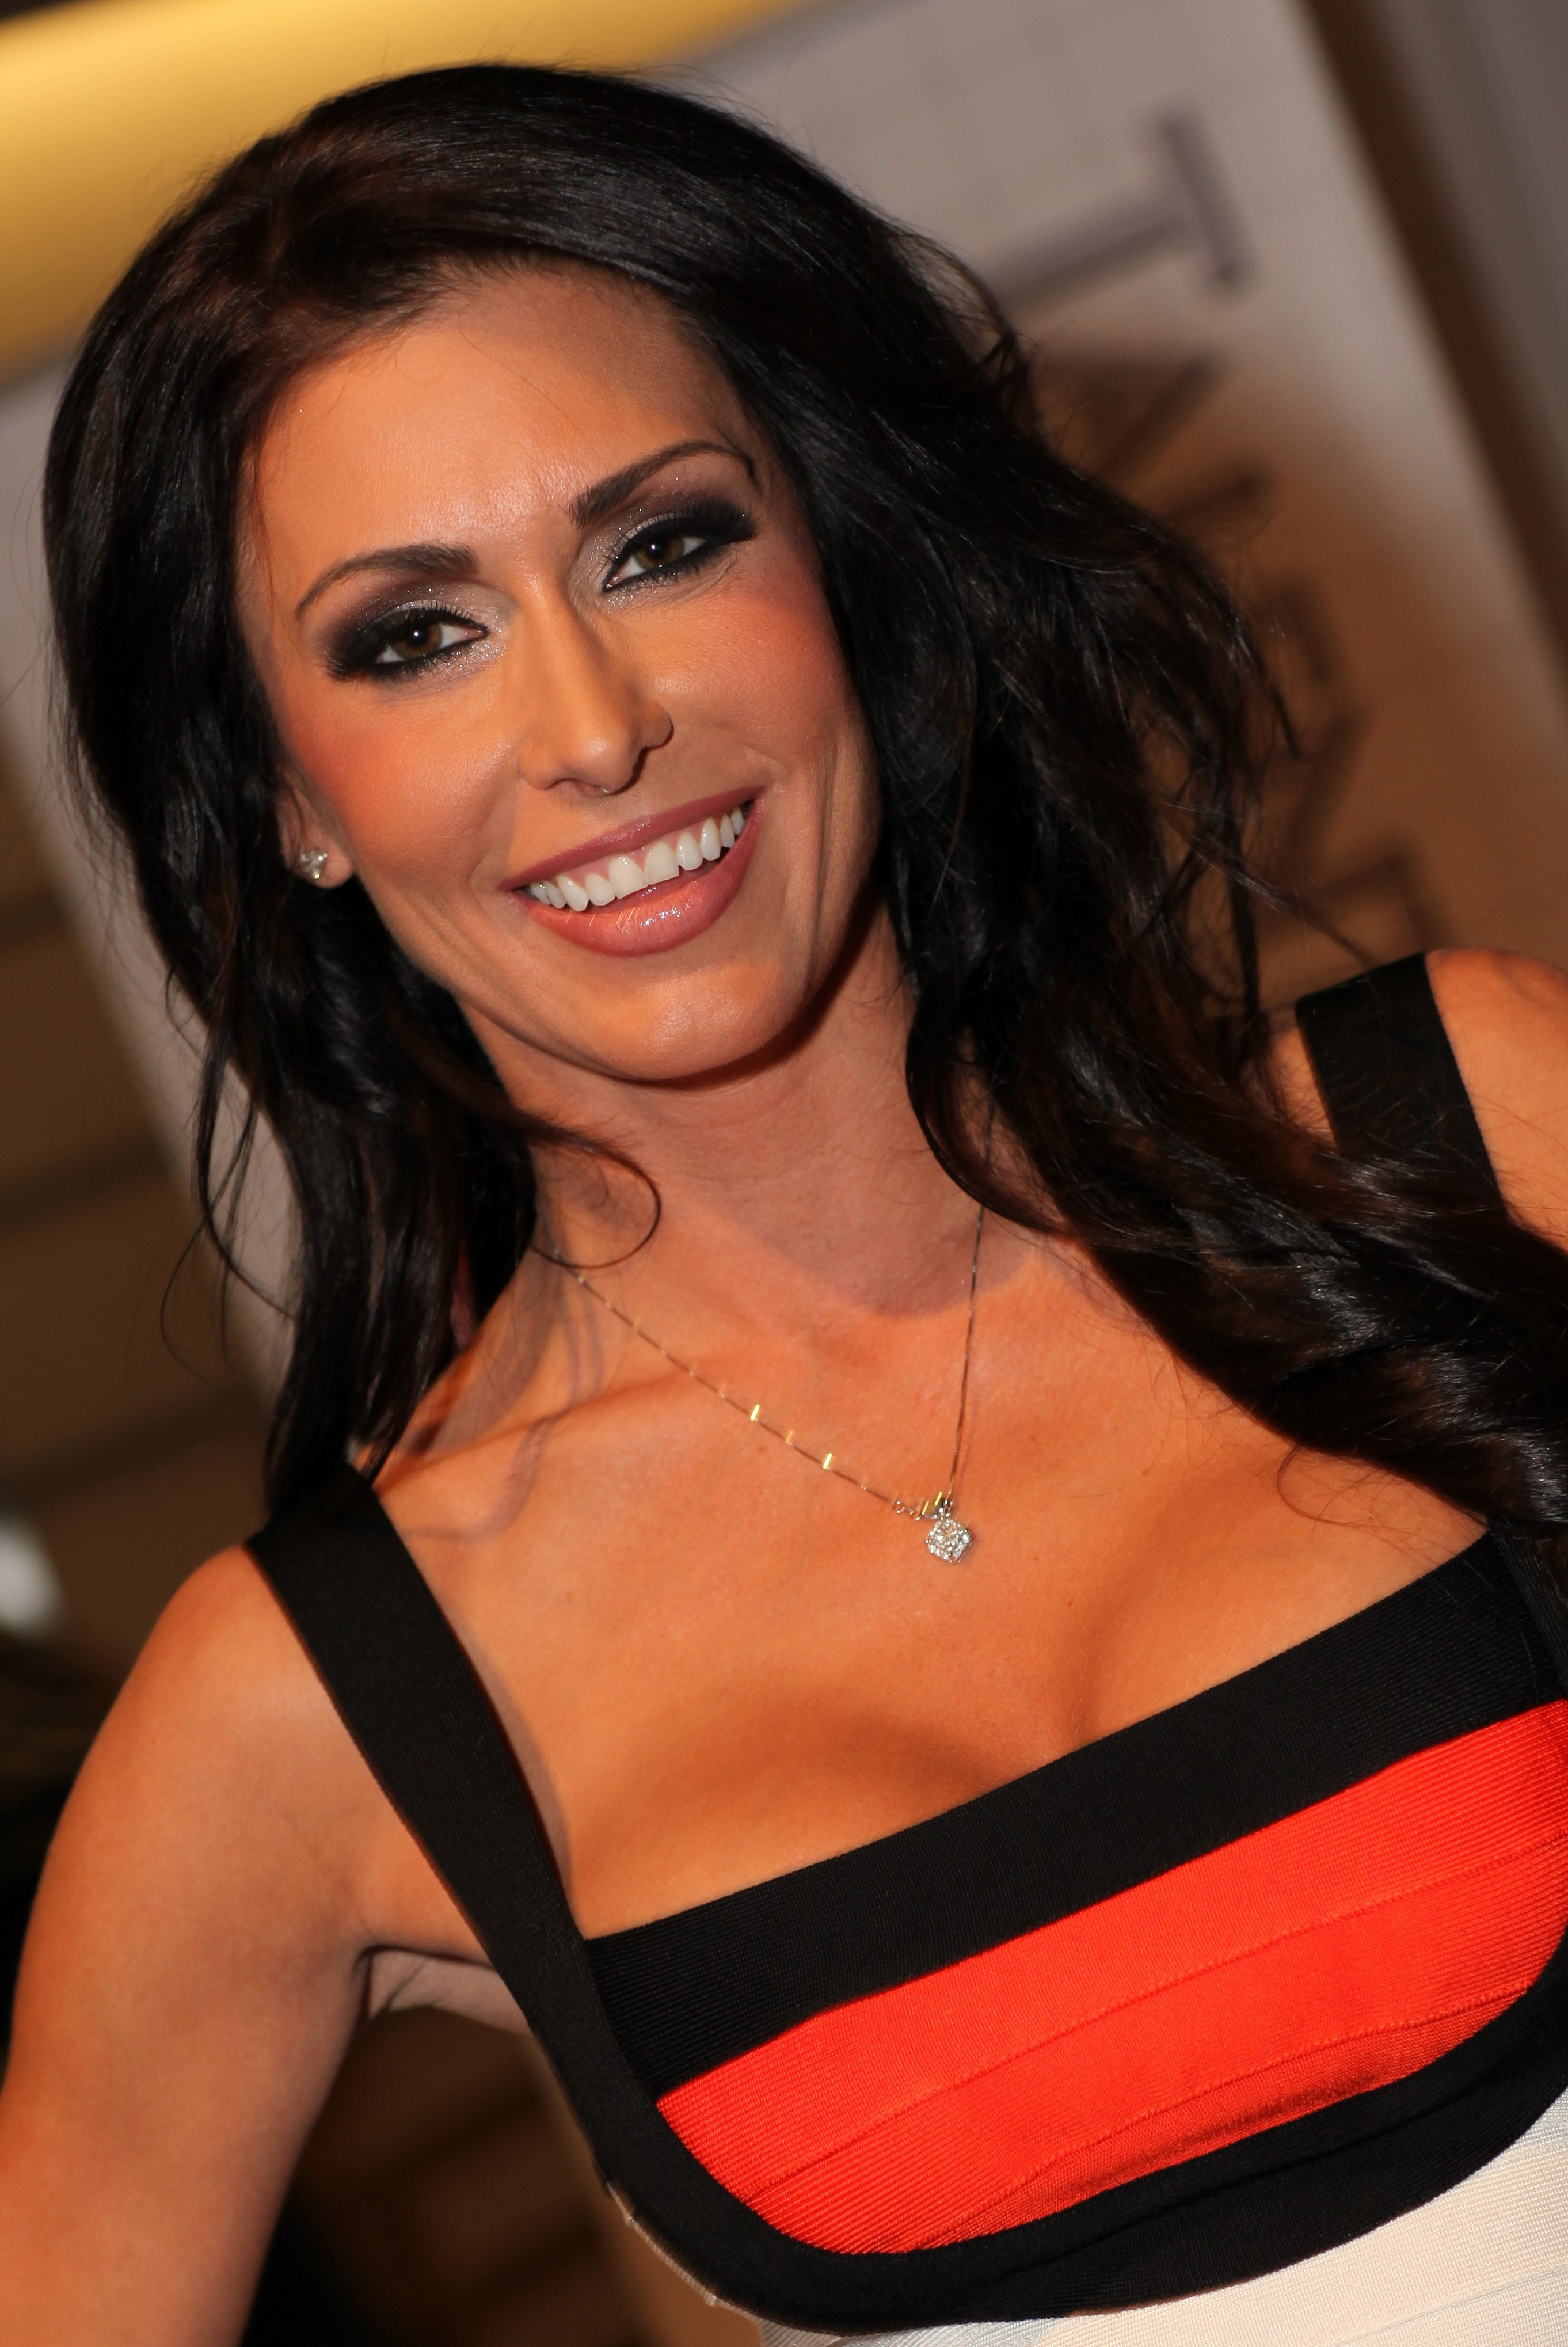 Jessica Jaymes High Quality Wallpapers For Iphone